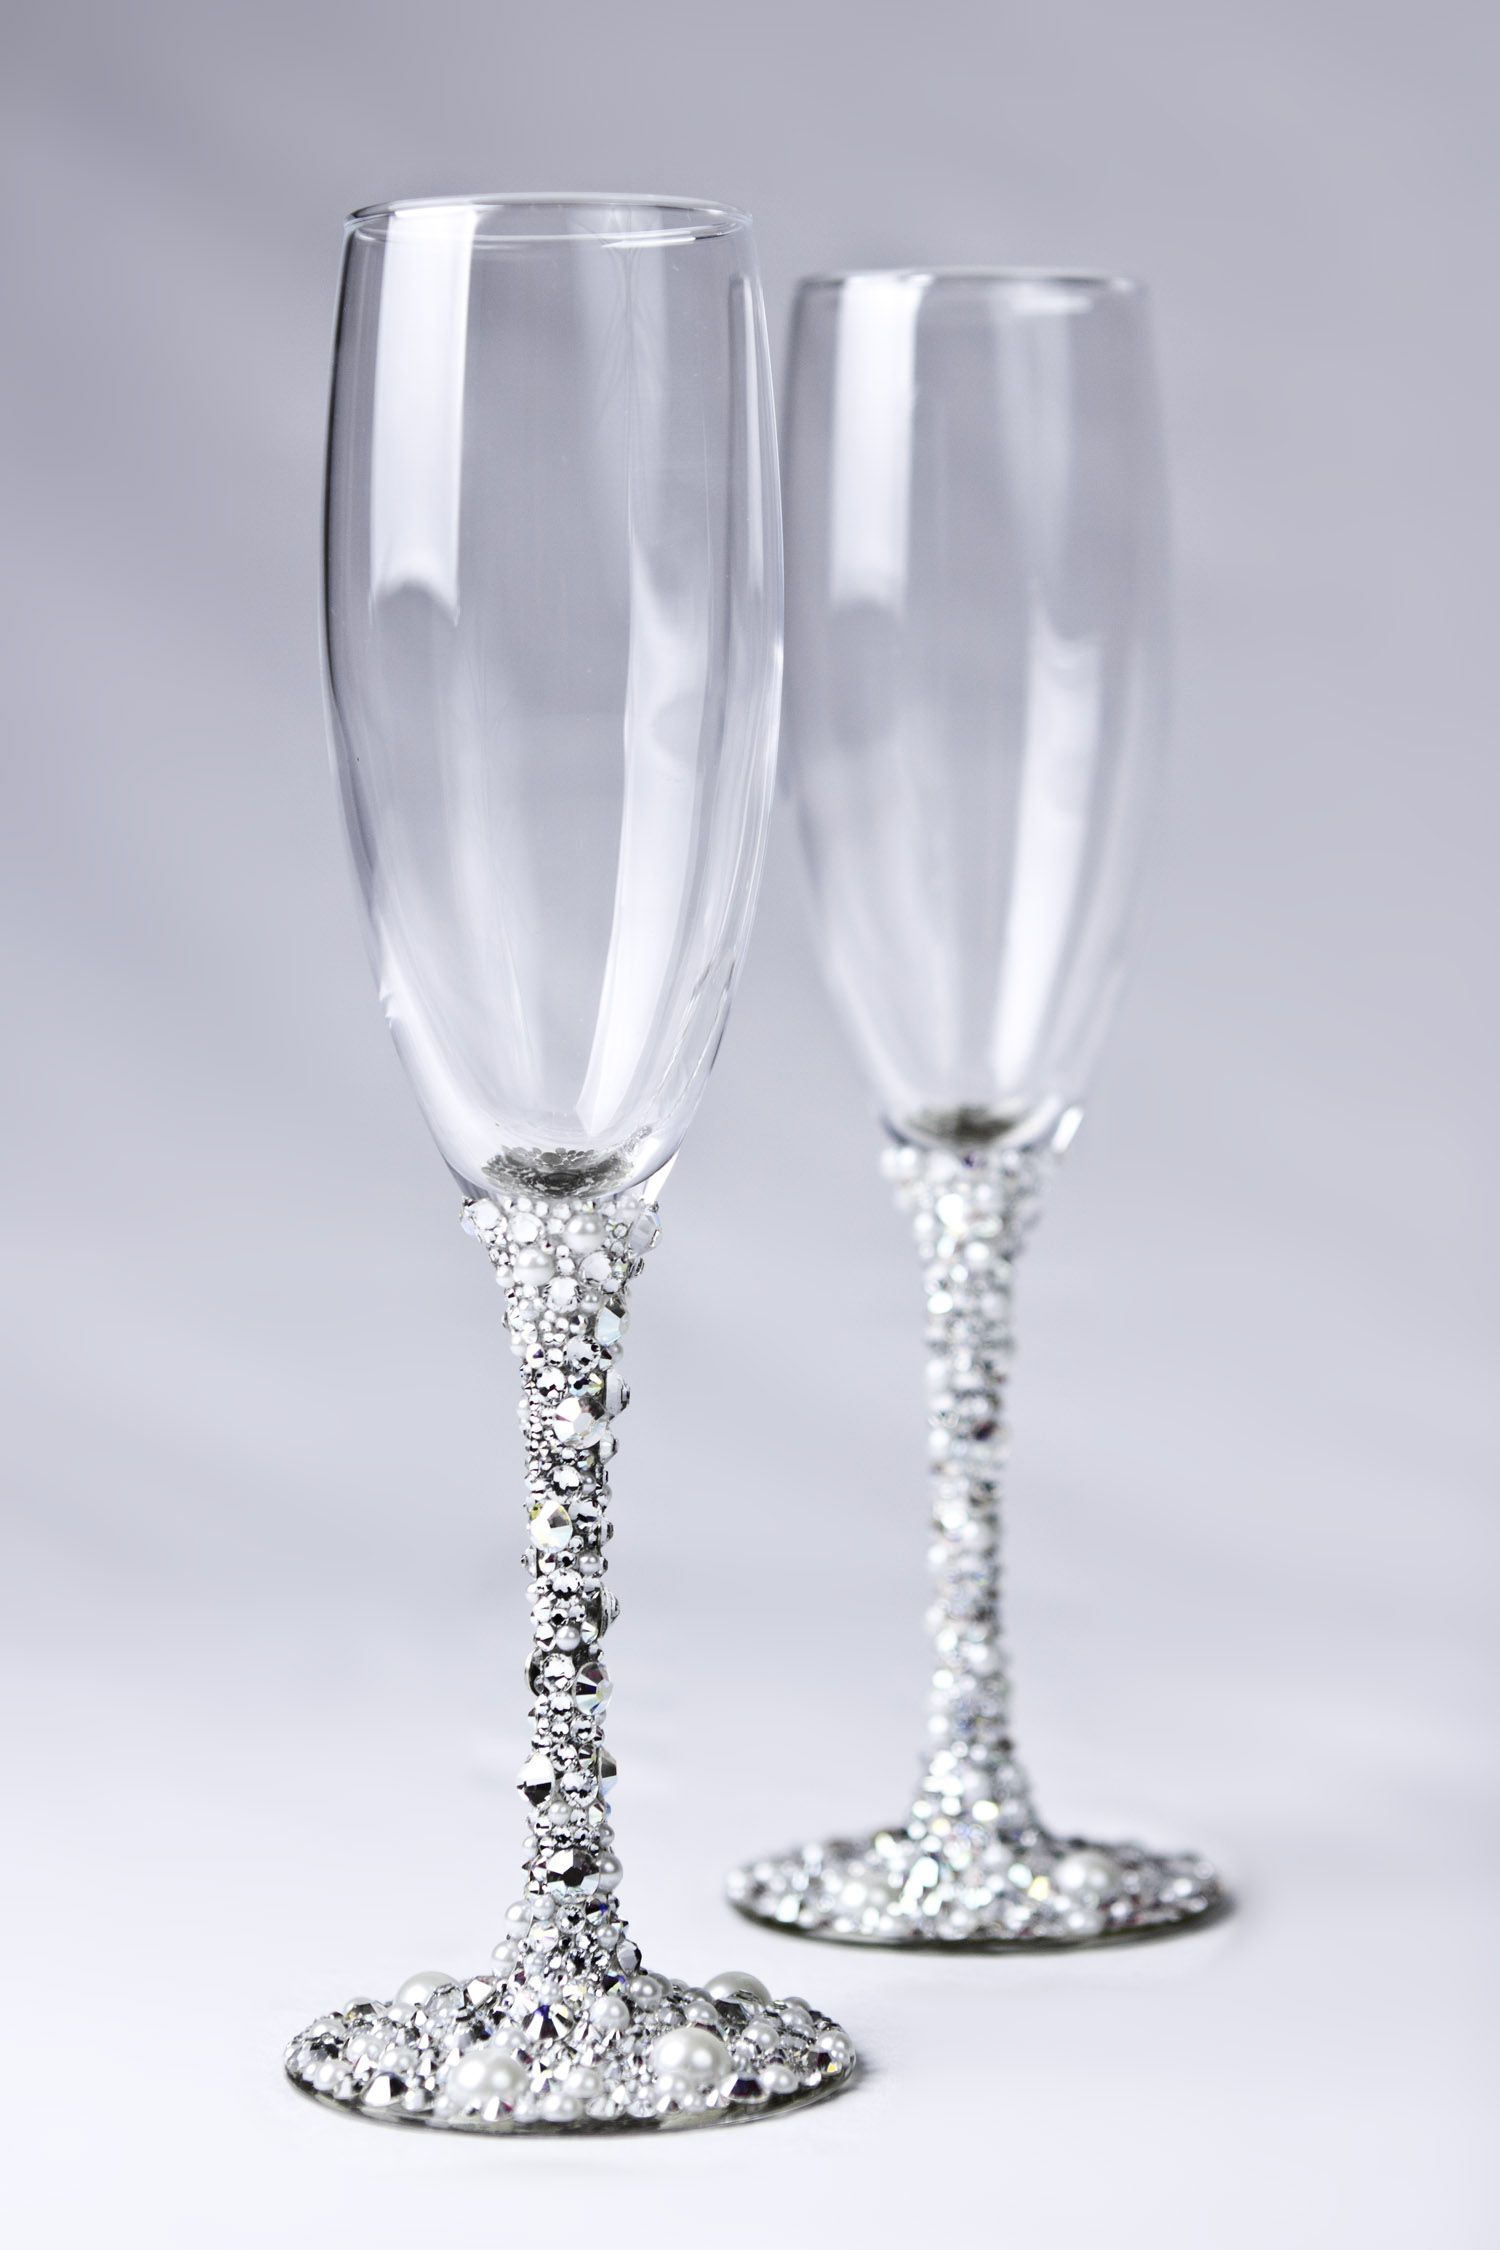 Swarovski Crystal Champagne Glasses Handmade I Want To Try This